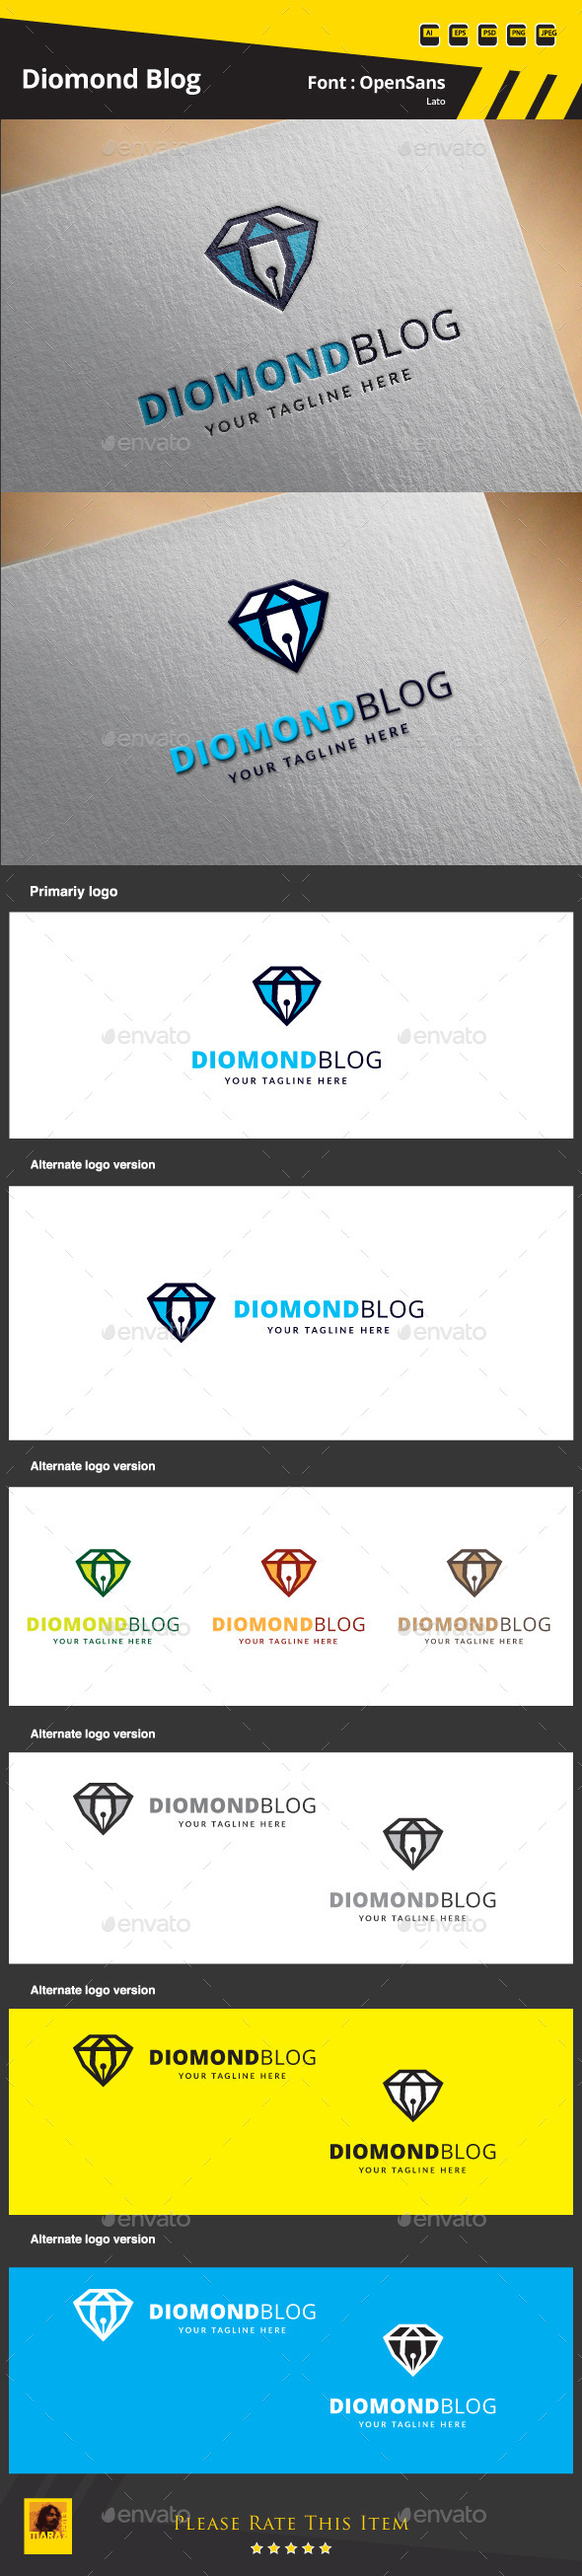 GraphicRiver Diamond Blog Logo Template 9630822